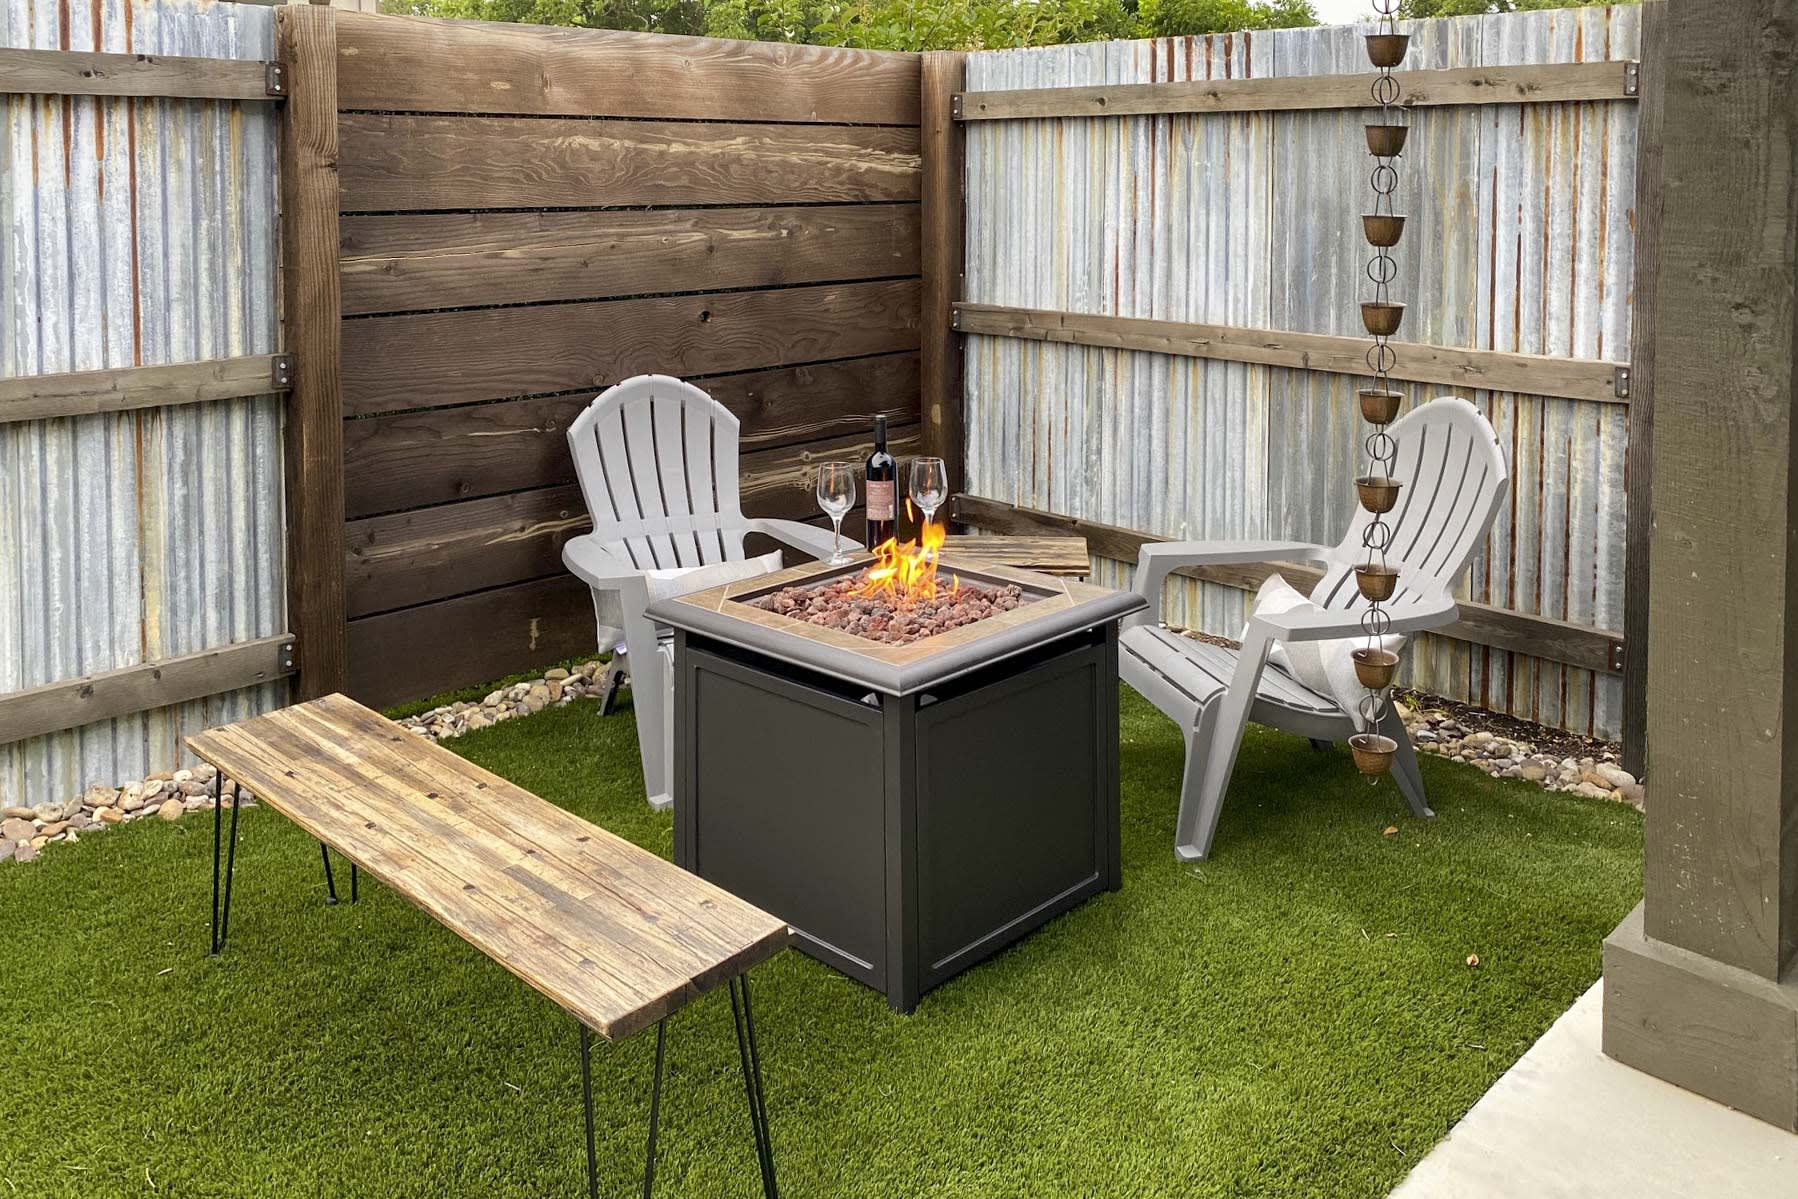 End the evening around the brand new propane fire pit!